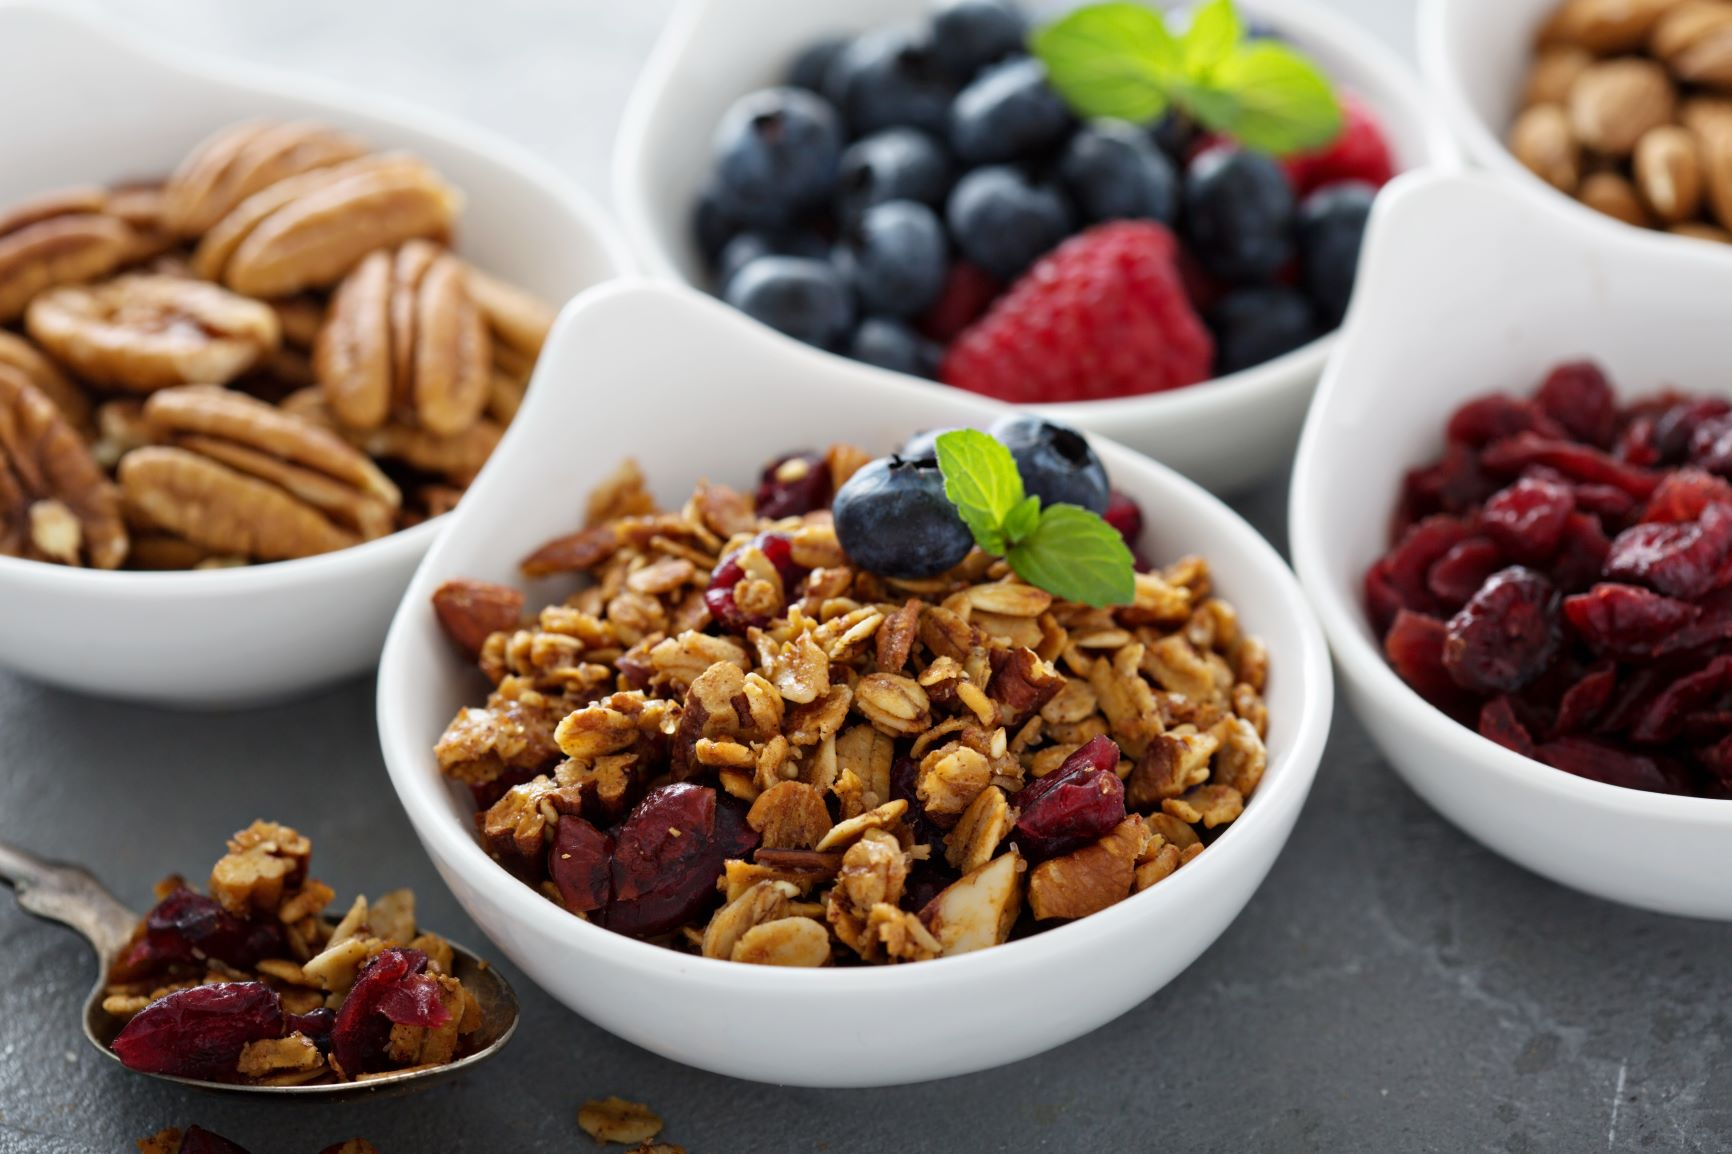 Snacks for diabetics and blood sugar